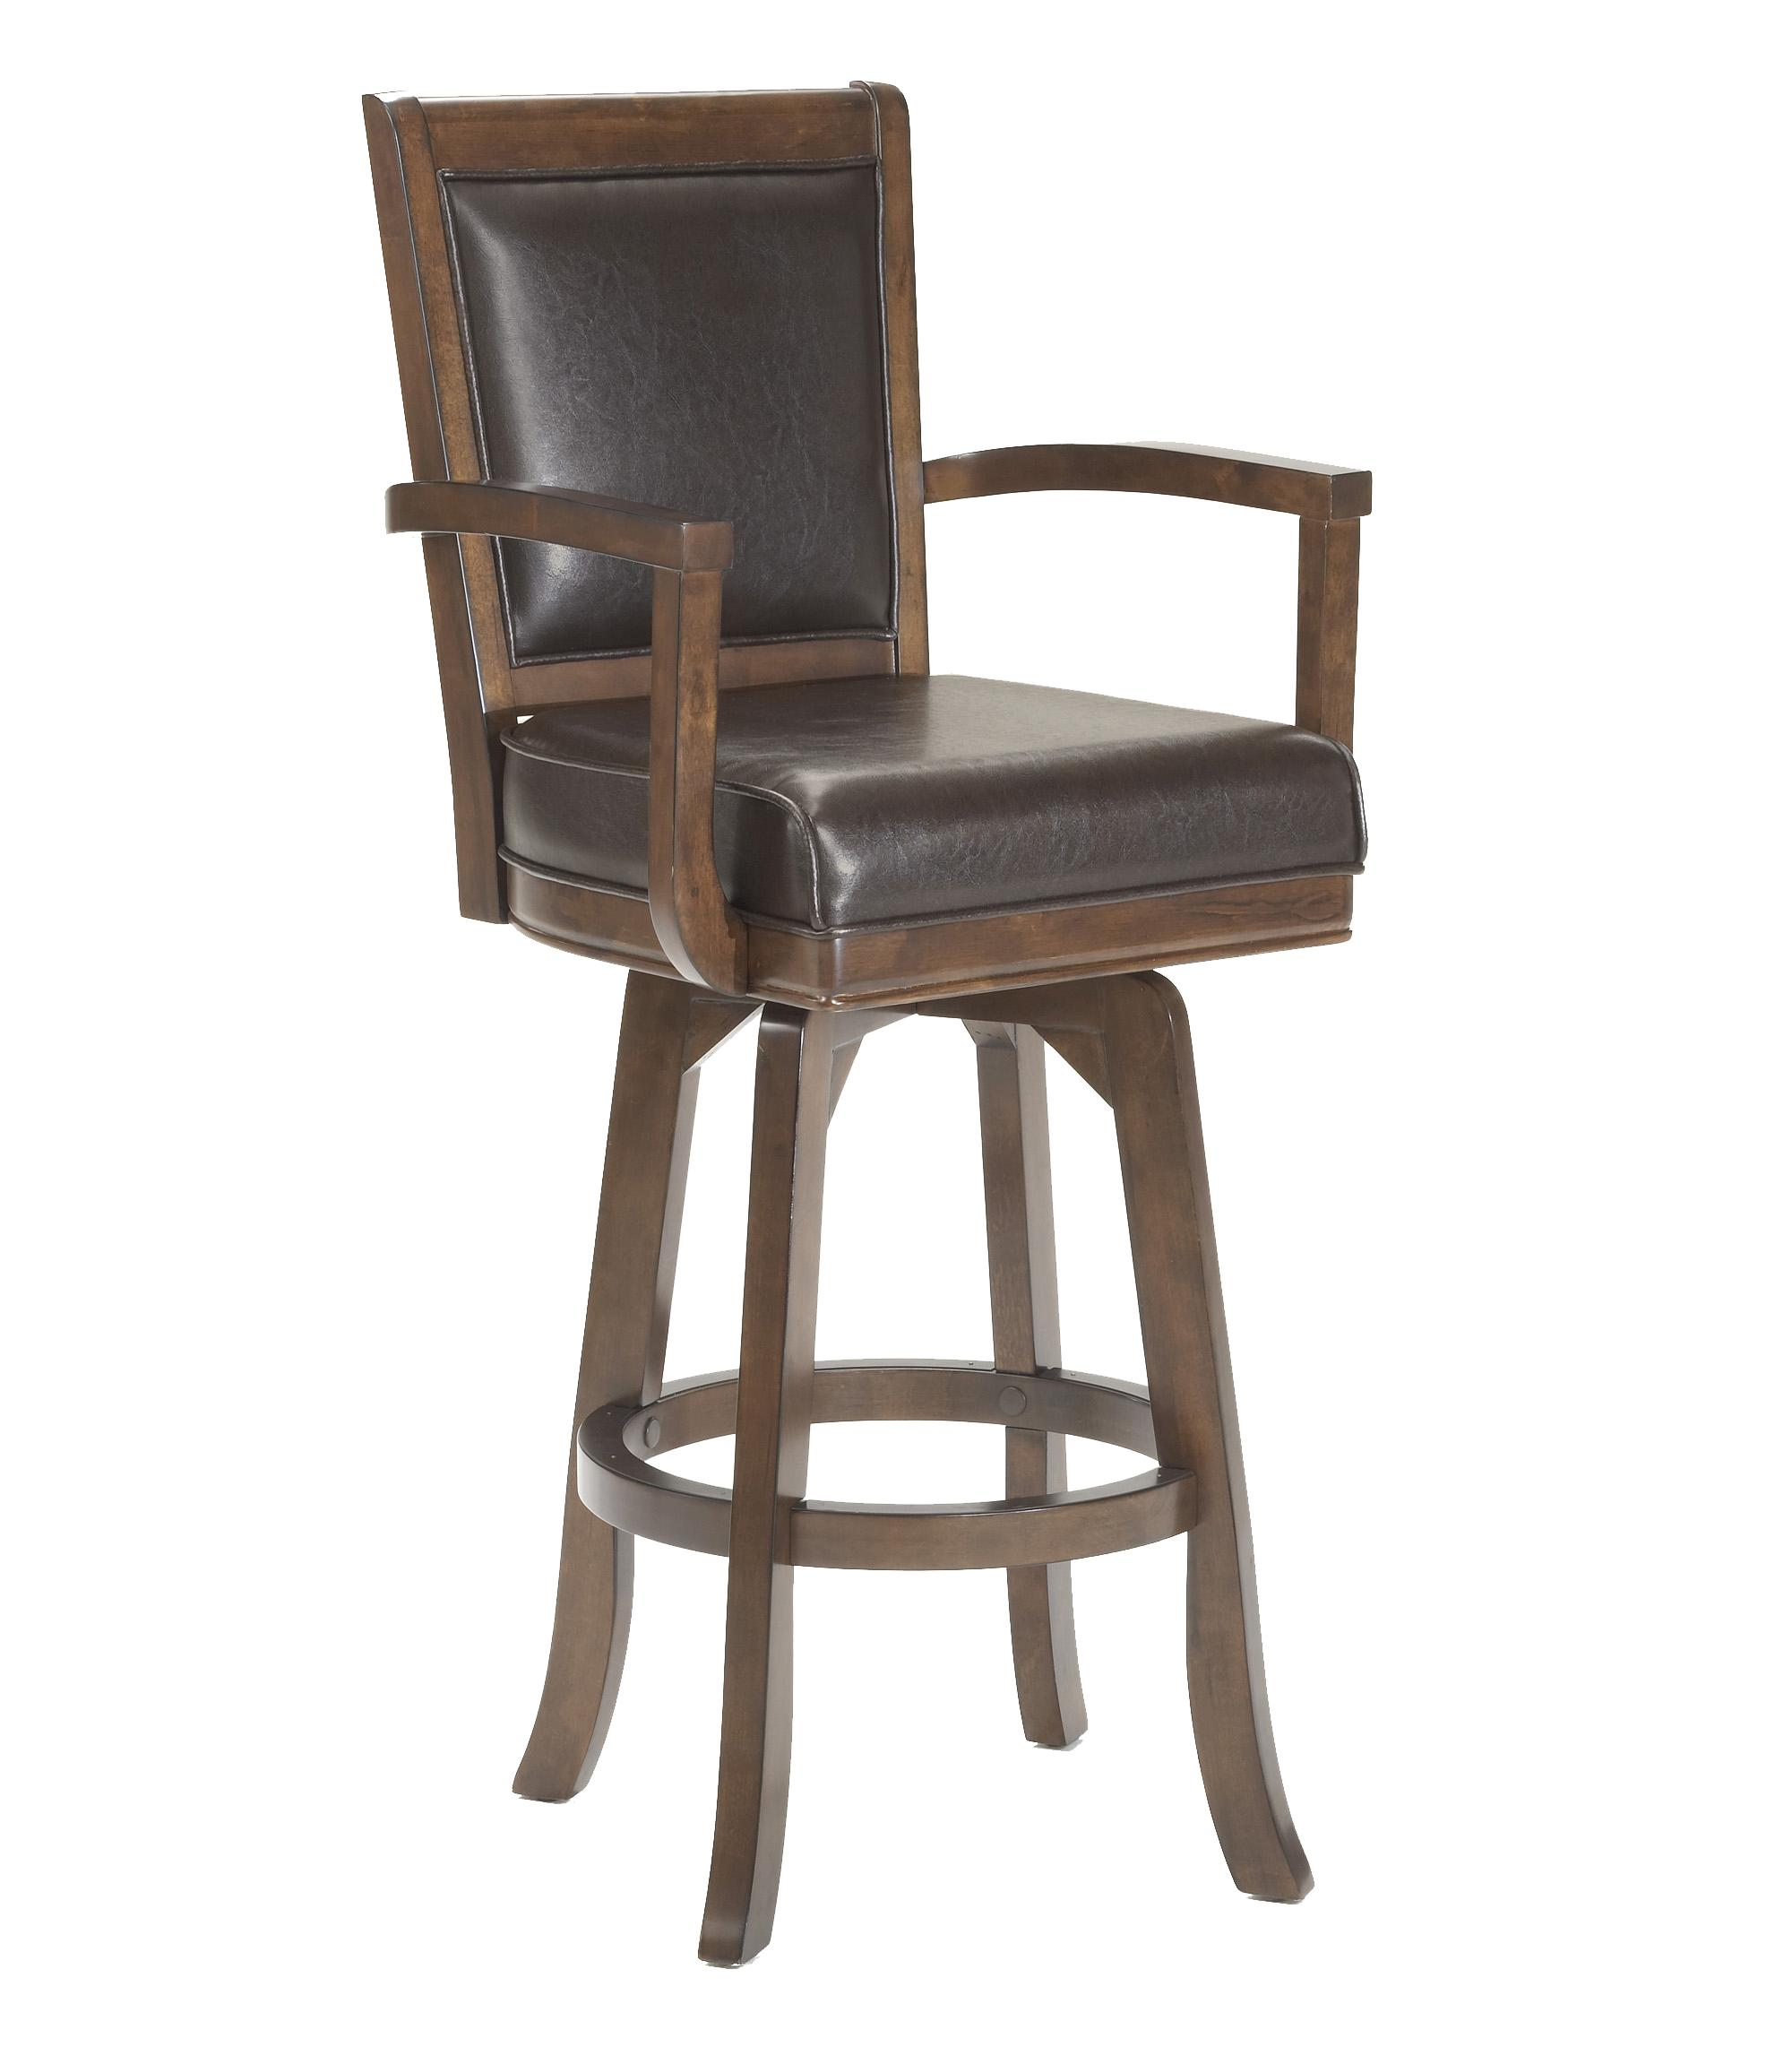 Hillsdale Game Stools & Chairs Ambassador Swivel Bar Stool - Item Number: 6124-830